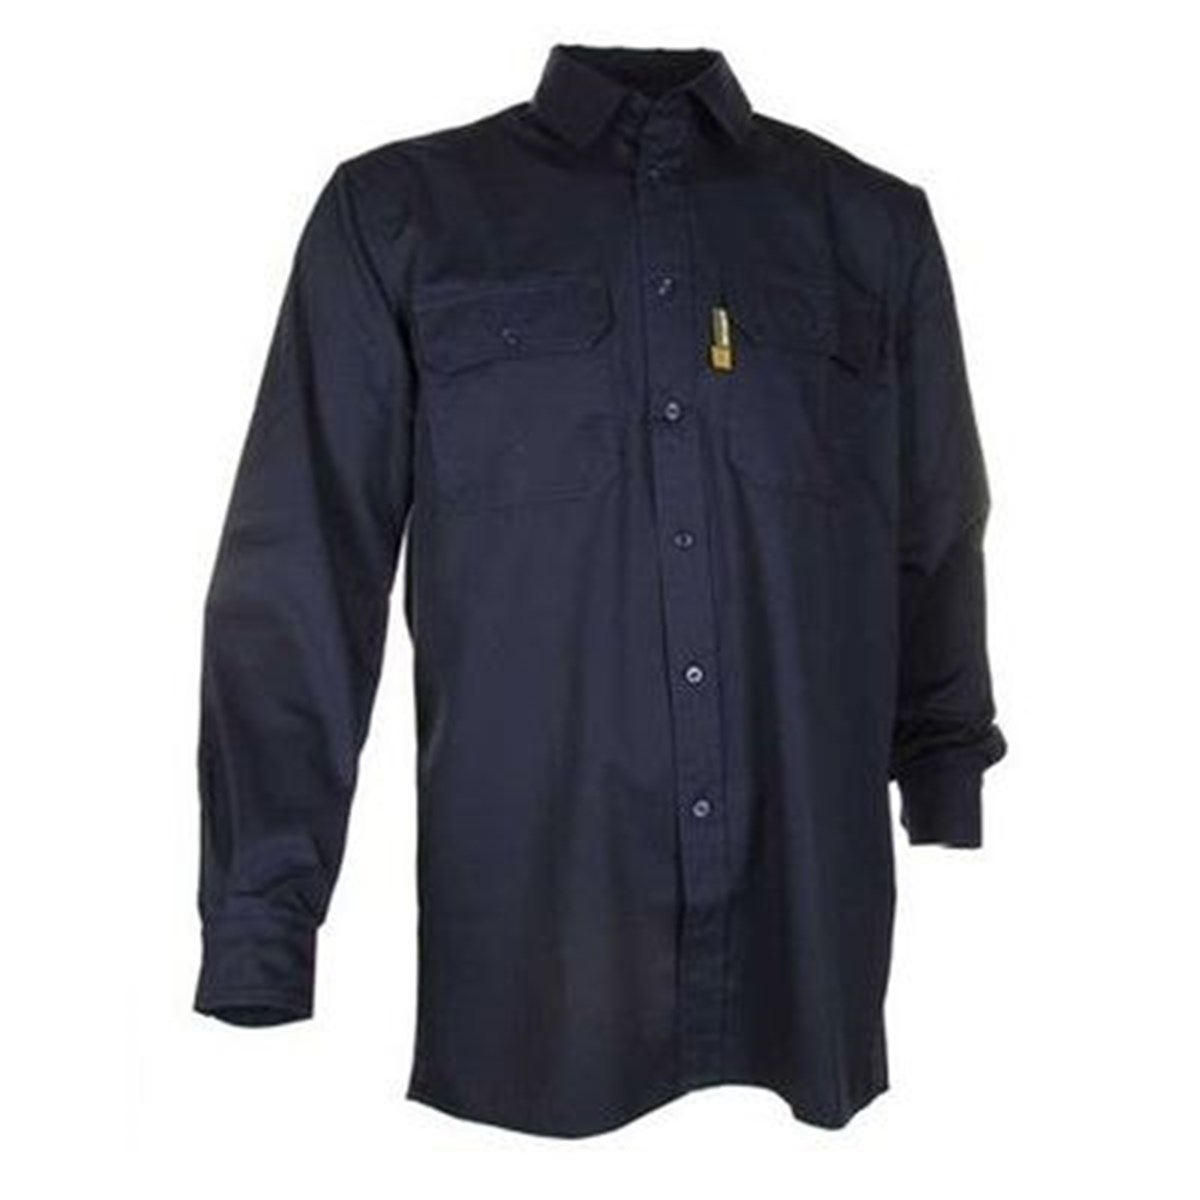 Rovince blouse marine navy s